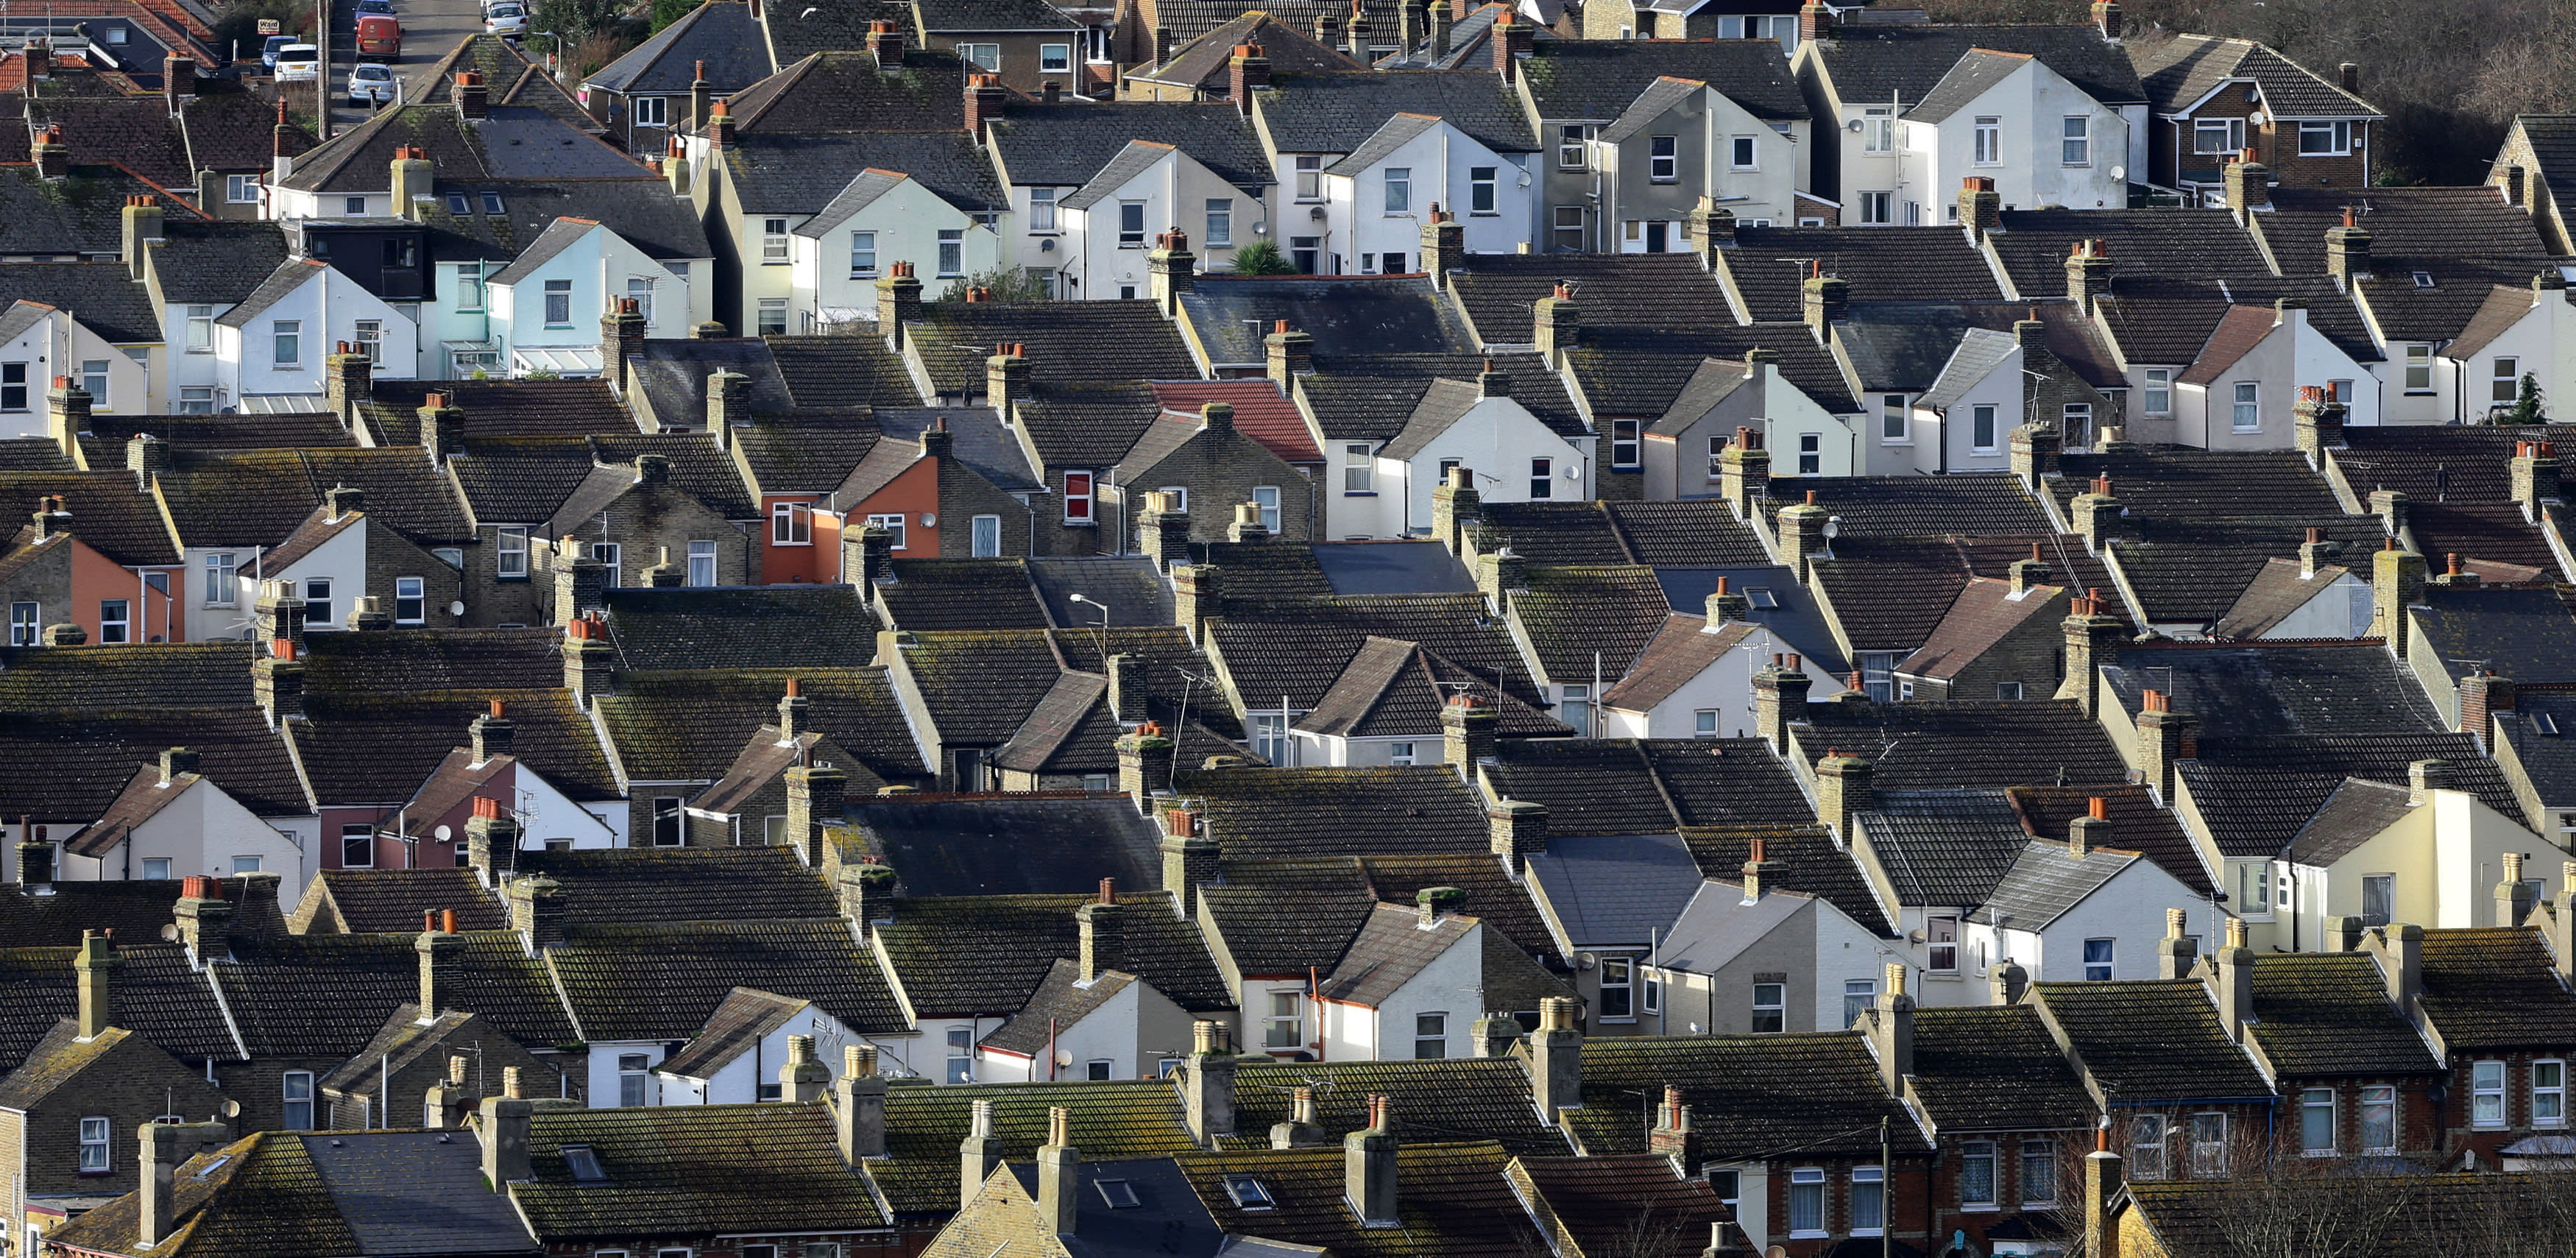 High LTV mortgages spike to 2008 level